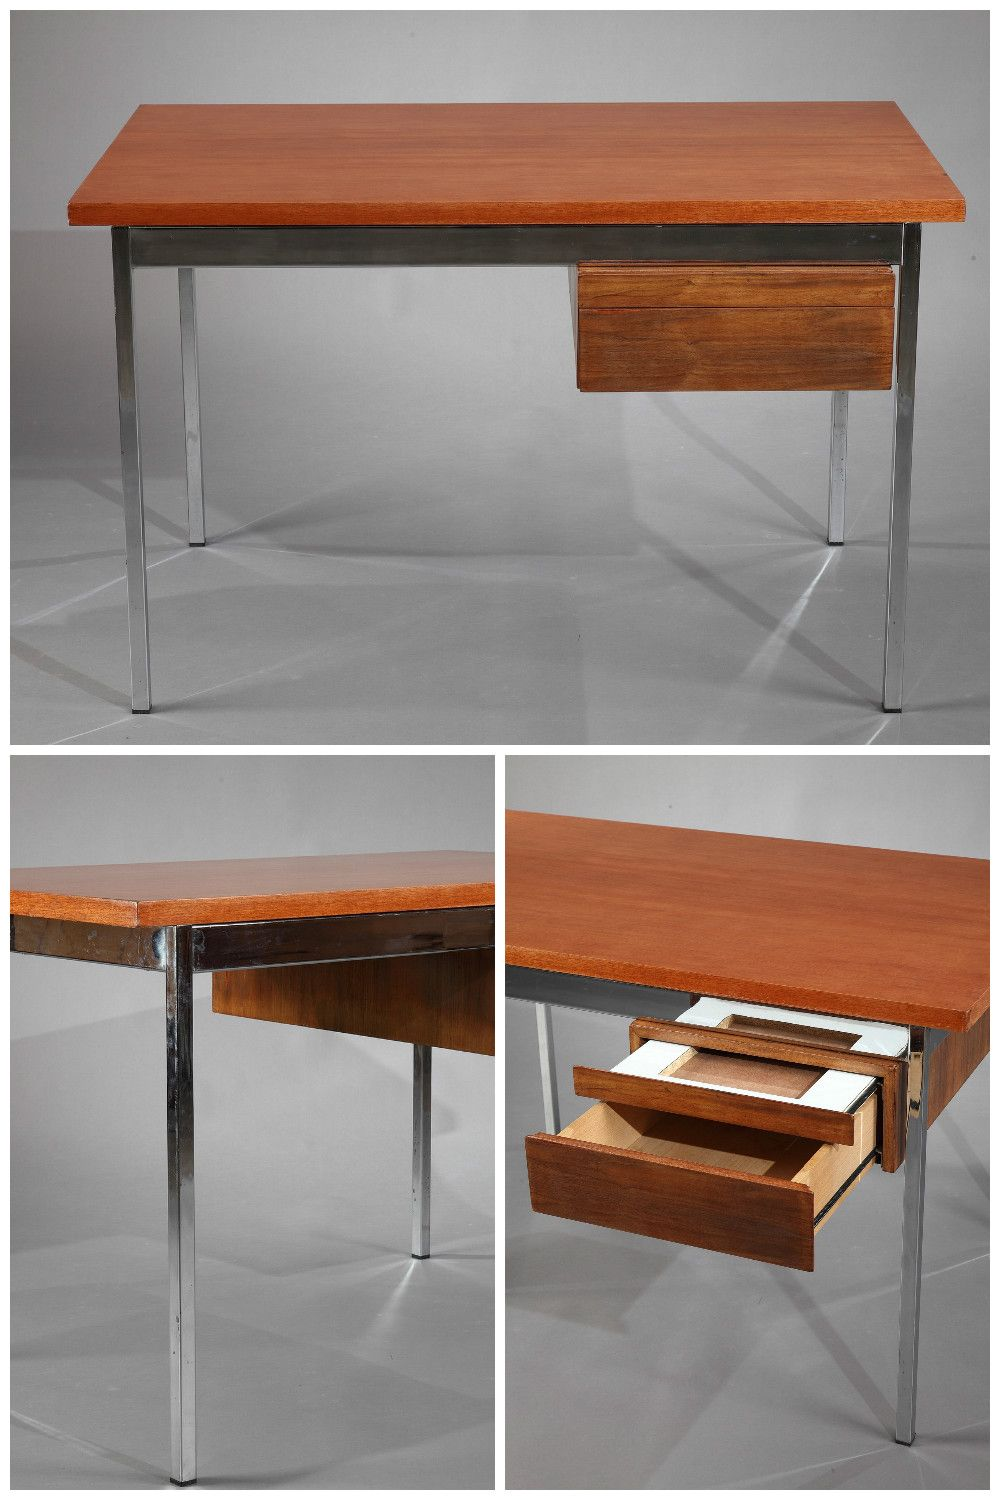 Modernist desk with wooden tray and chrome-plated metal structure, provided with two small drawers. Designed by Florence Knoll in the 50s and manufactured by Knoll International during the 1960s.